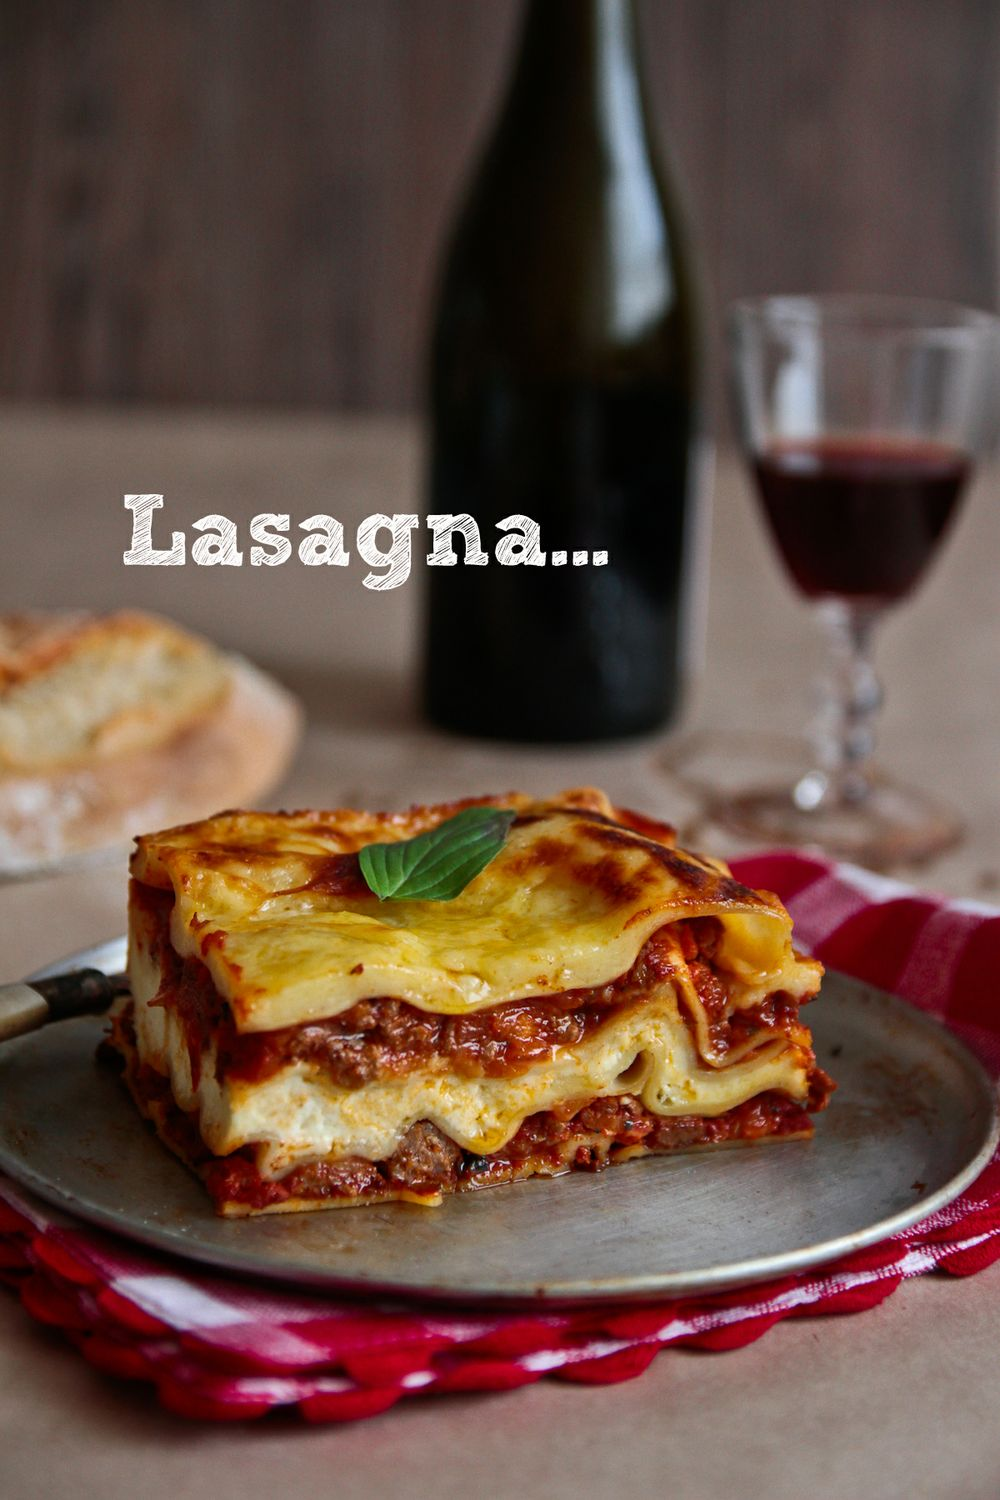 m-healthy-lasagna-1-3